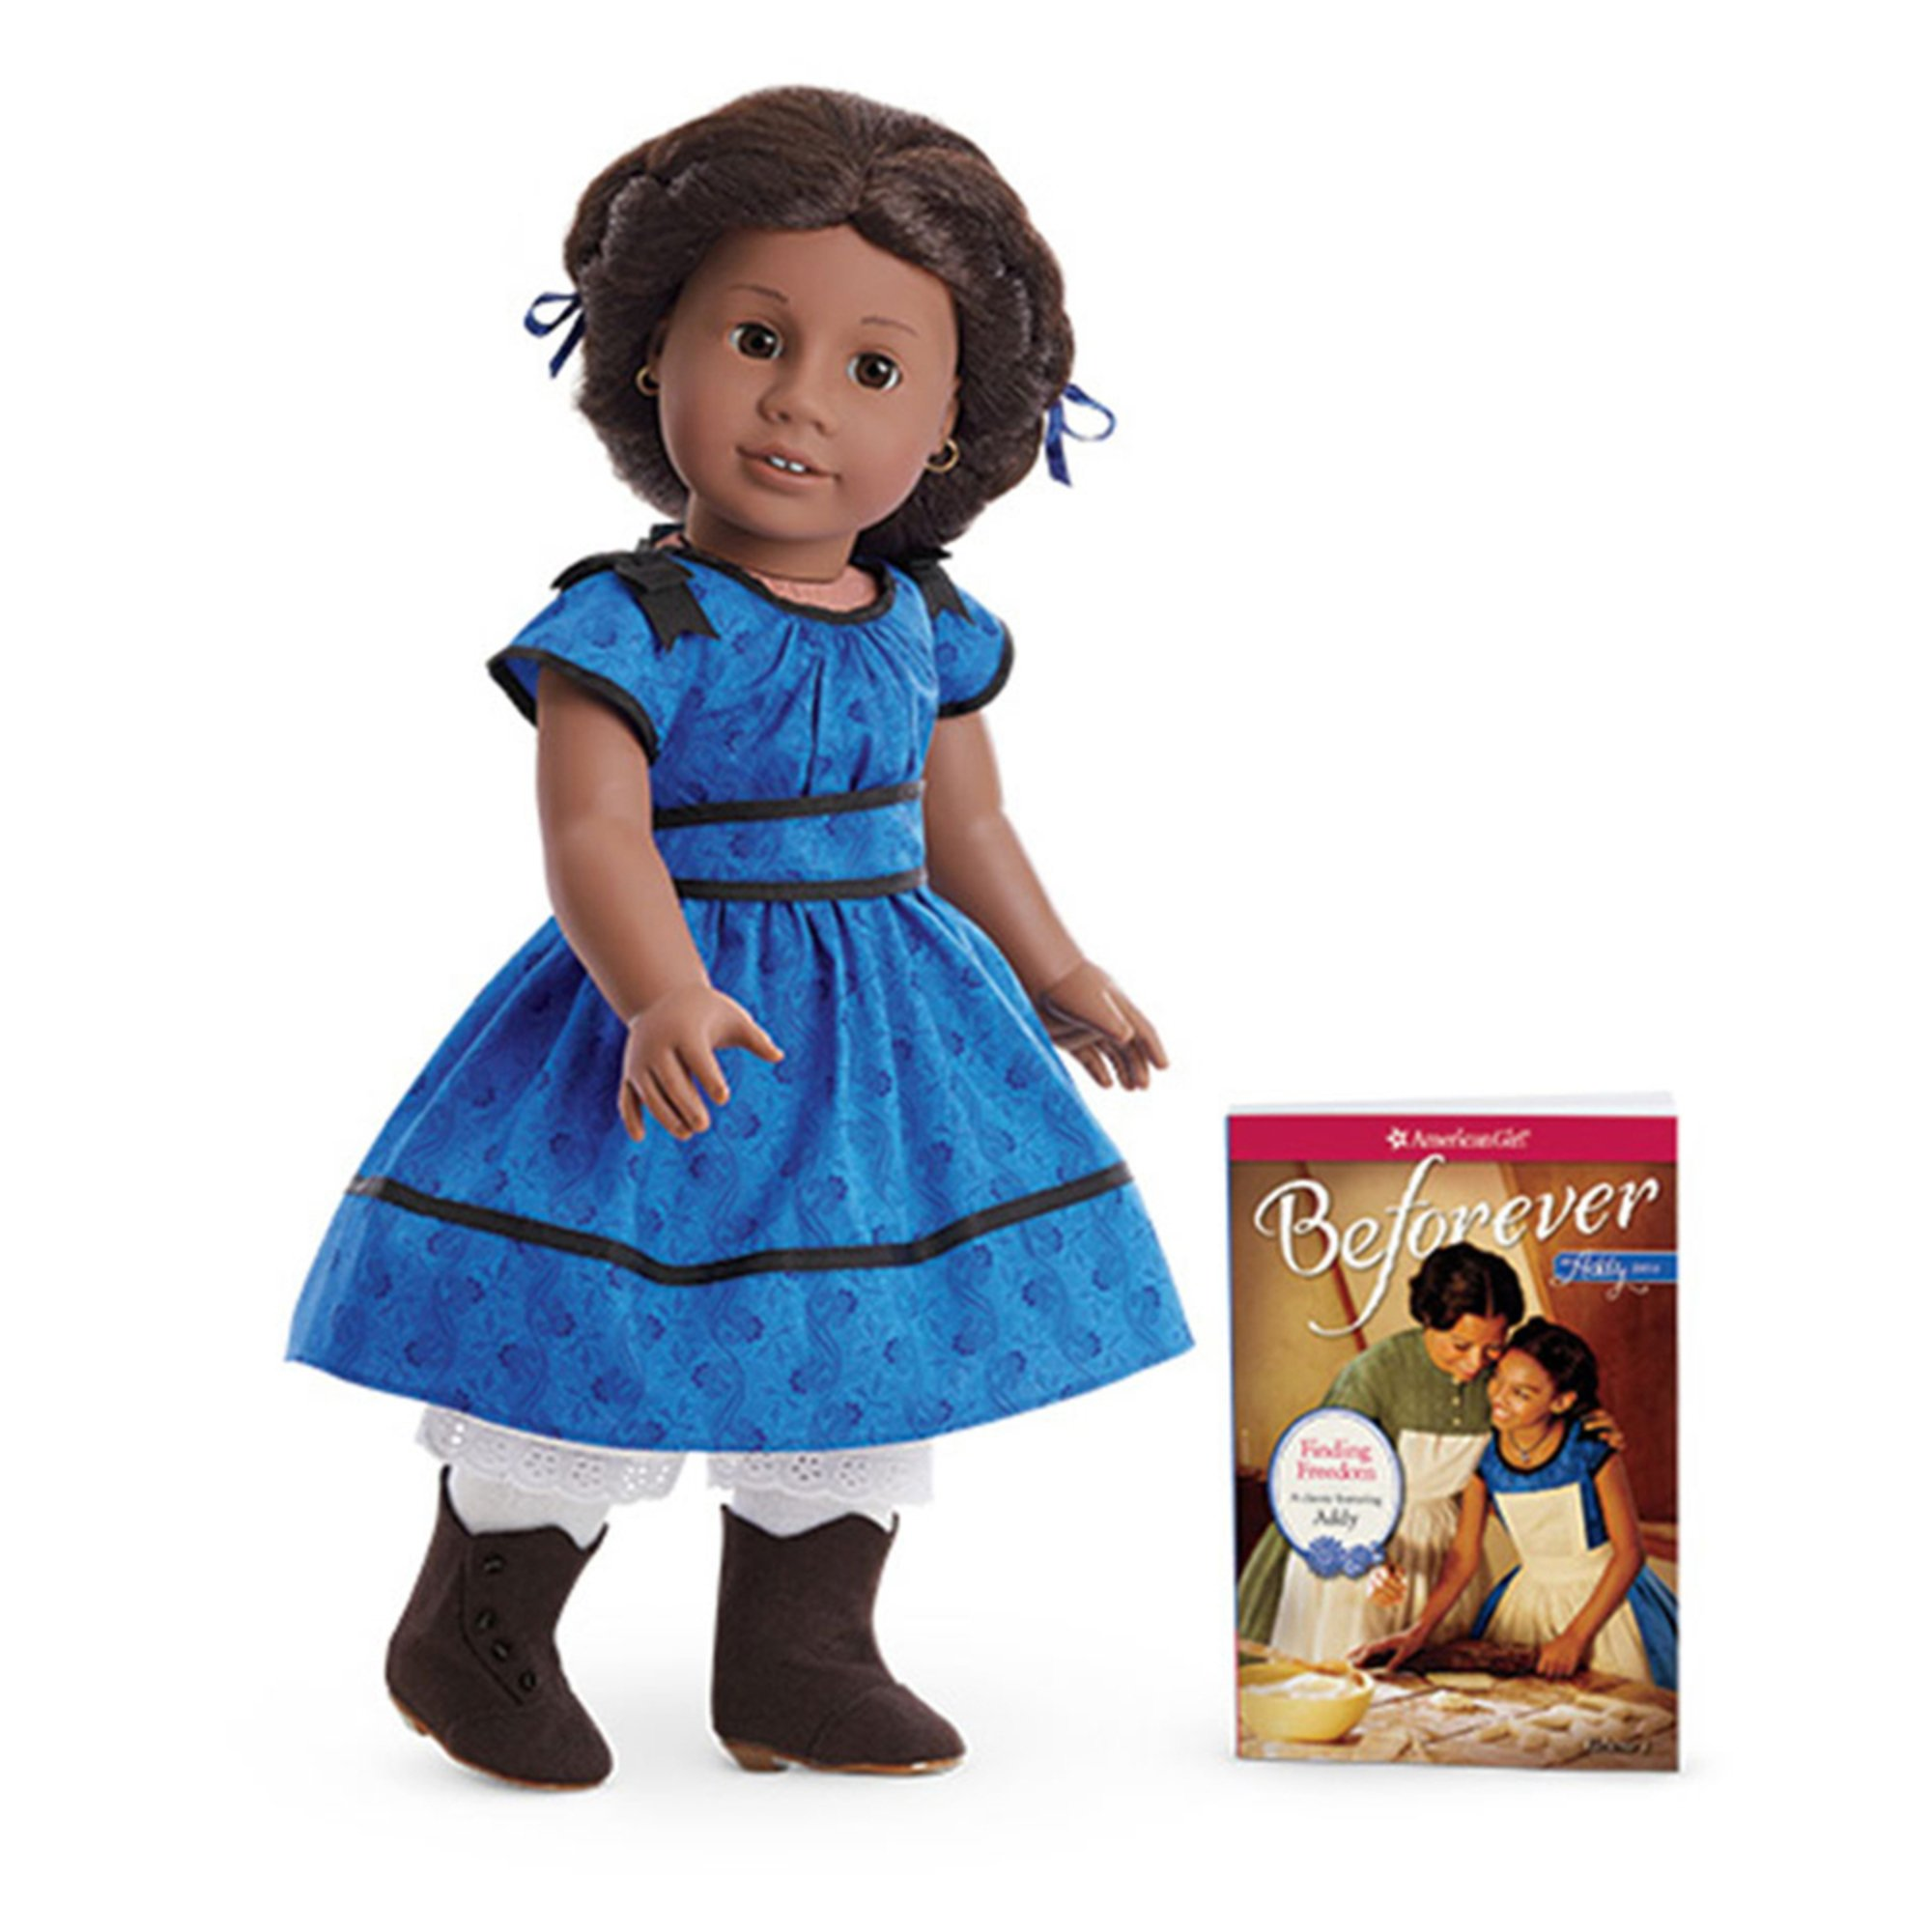 american girl american girl addy doll and book based on 0 reviews msrp ...